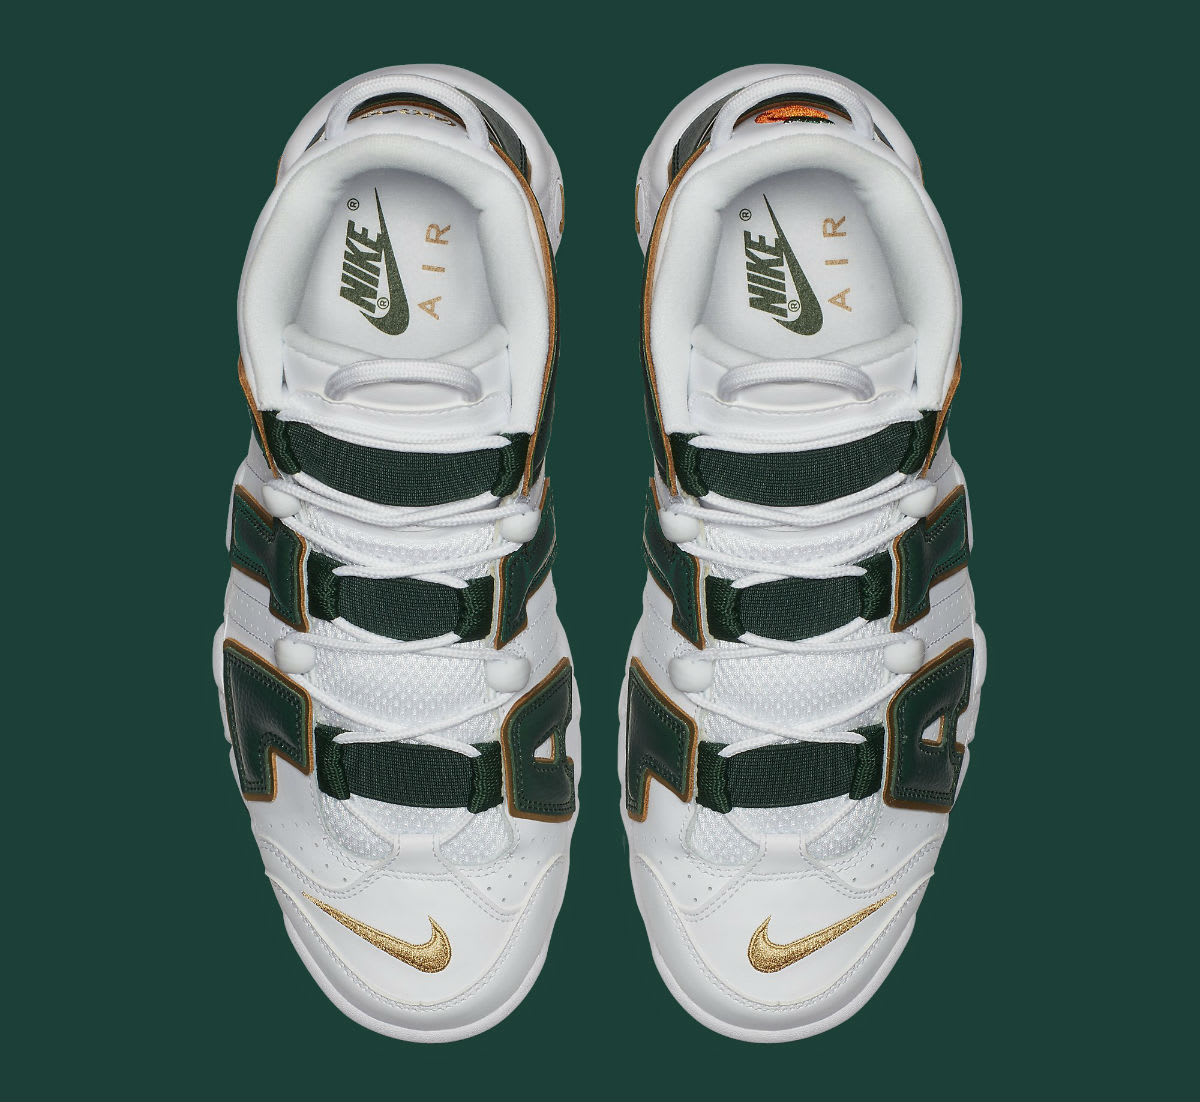 Nike Uptempo Atlanta For Sale